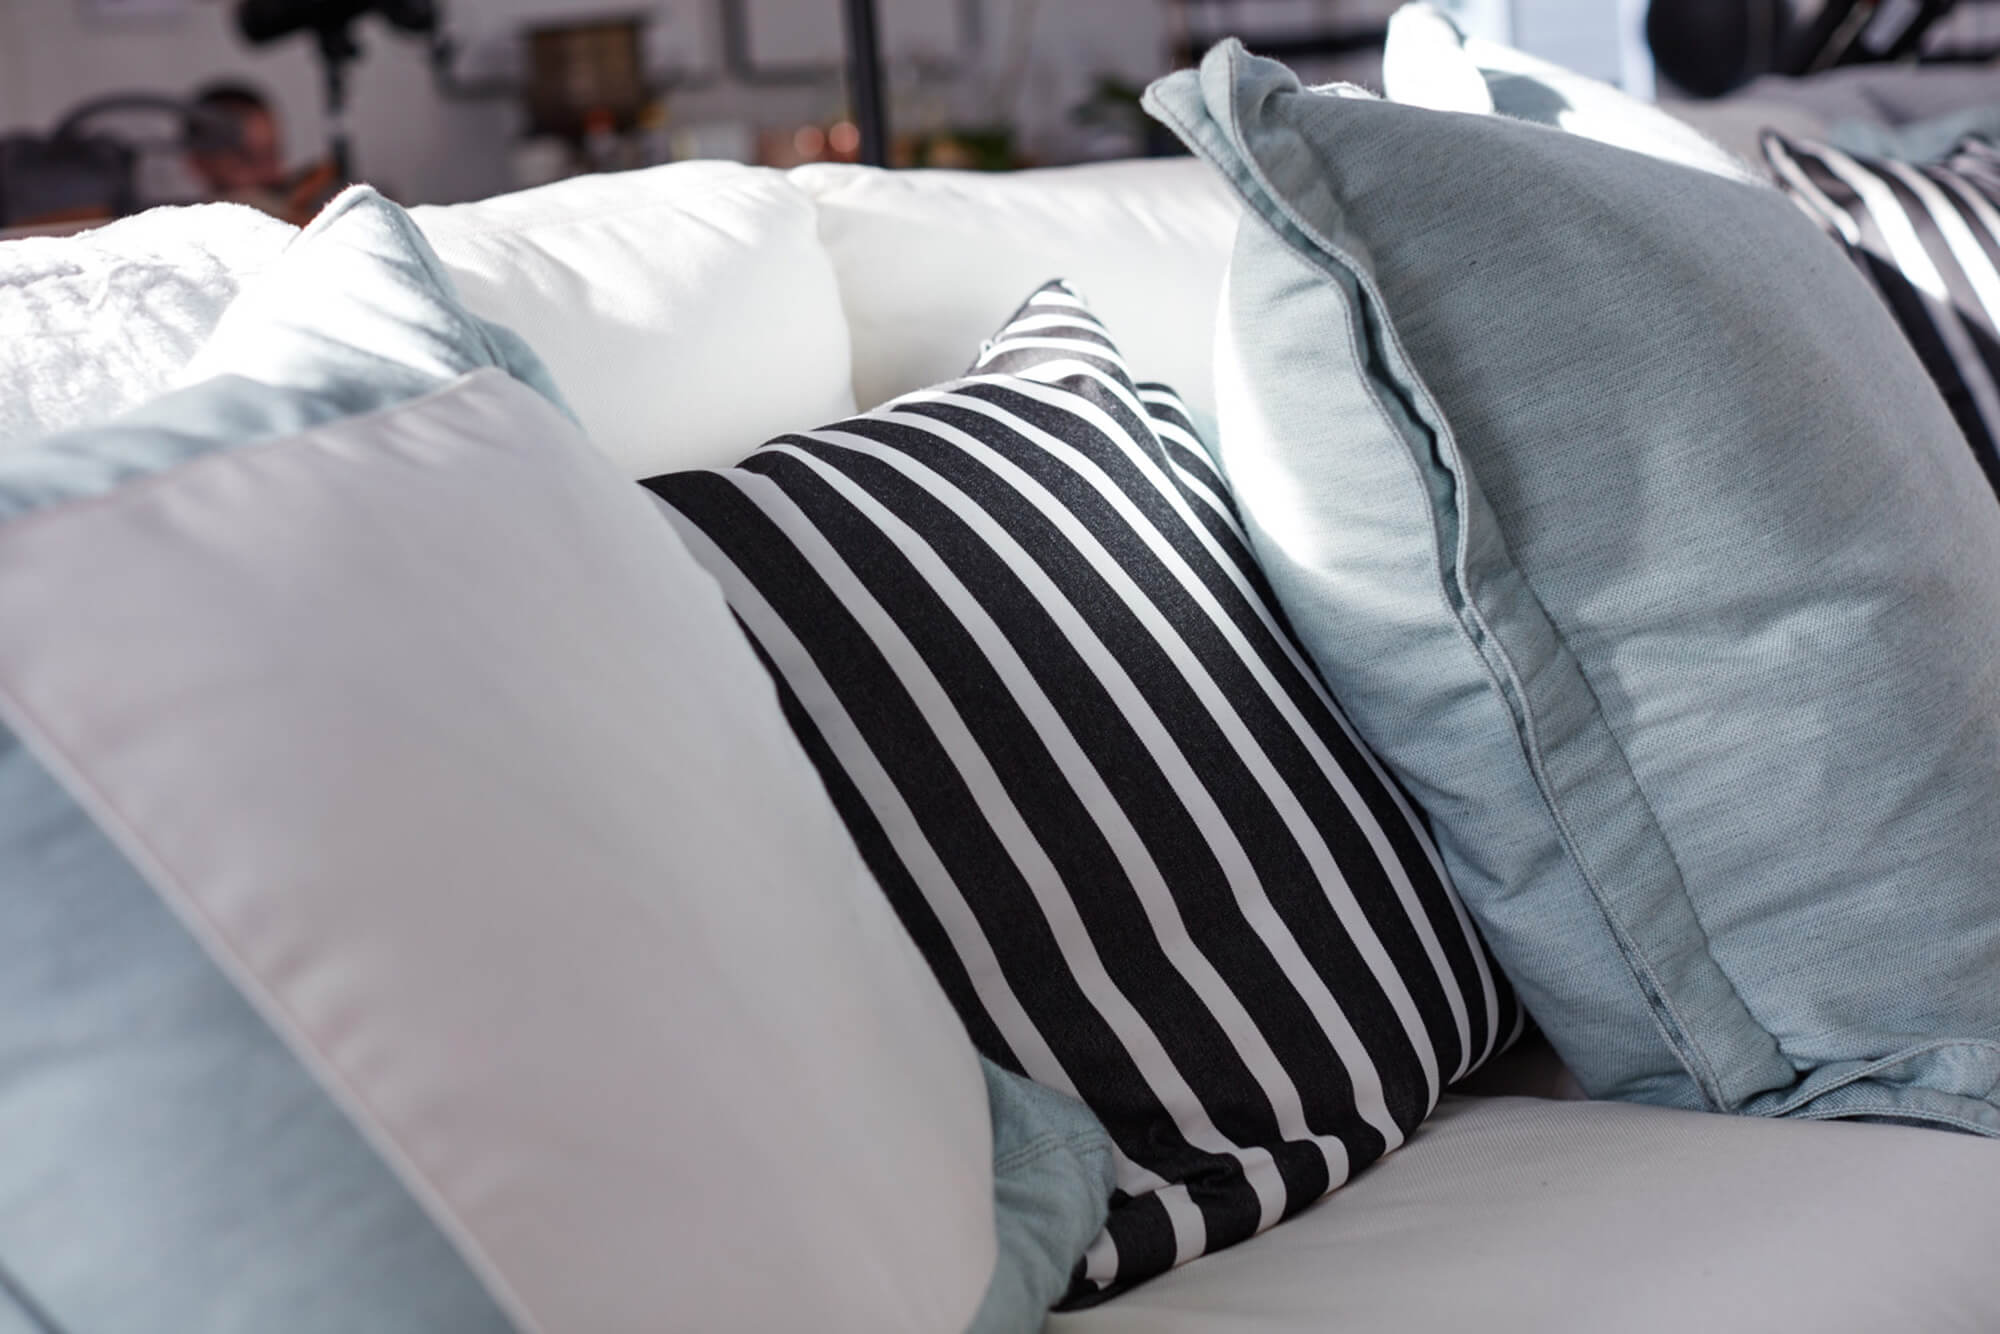 White sofa covered with decorative throw pillows